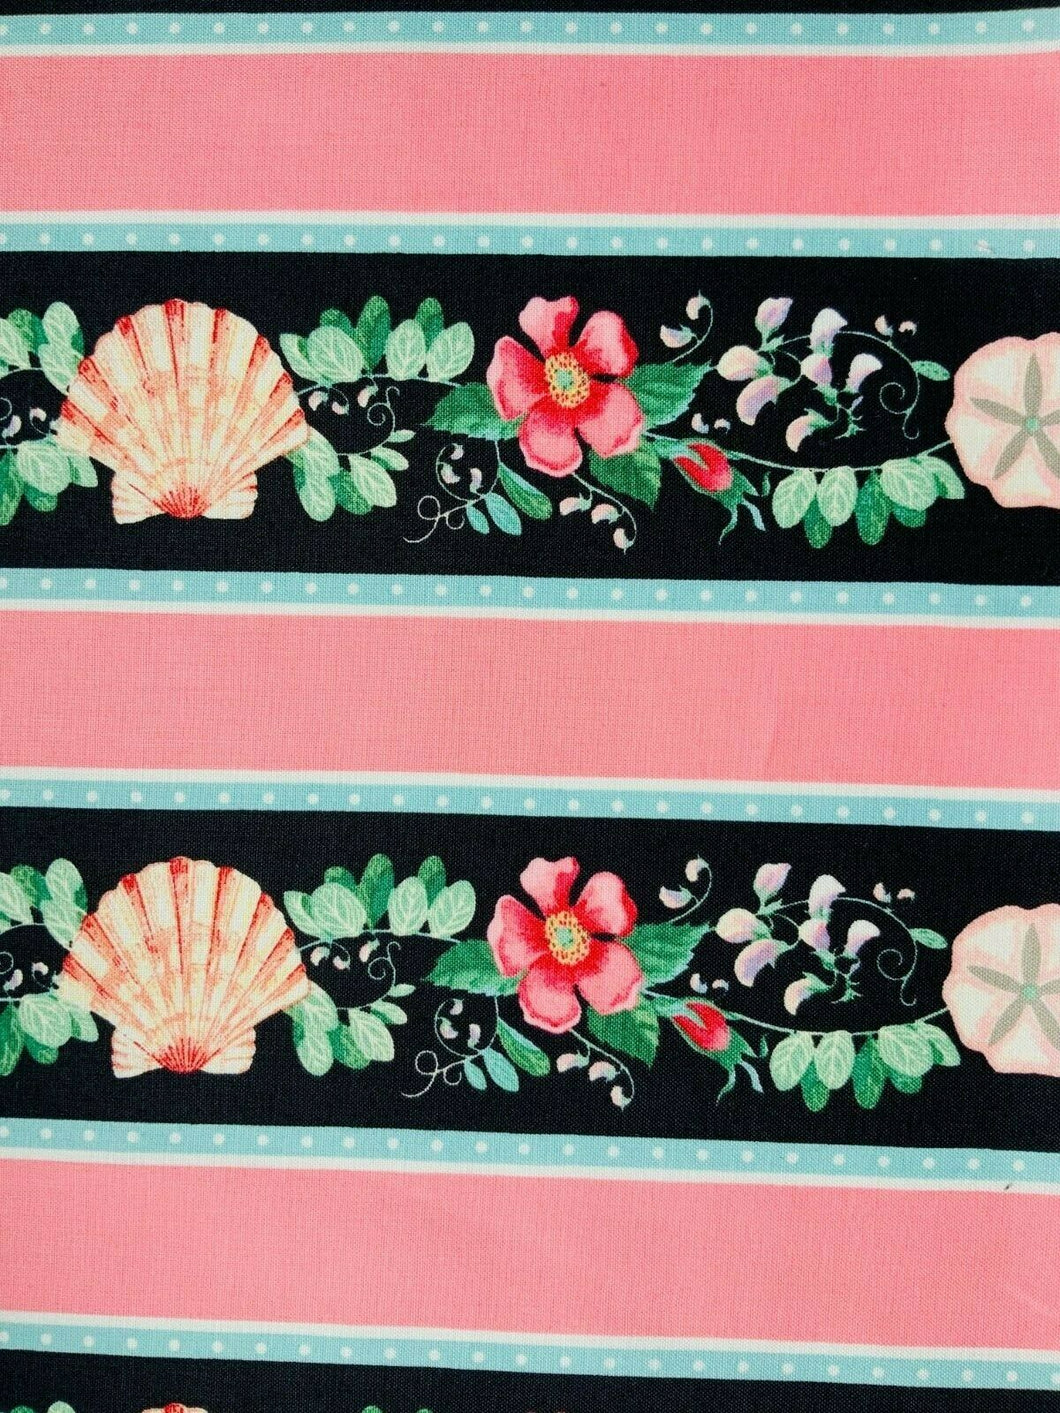 Pink Floral Blue Seaside Nautical Cotton Fabric Craft Quilting Seashell Fabric